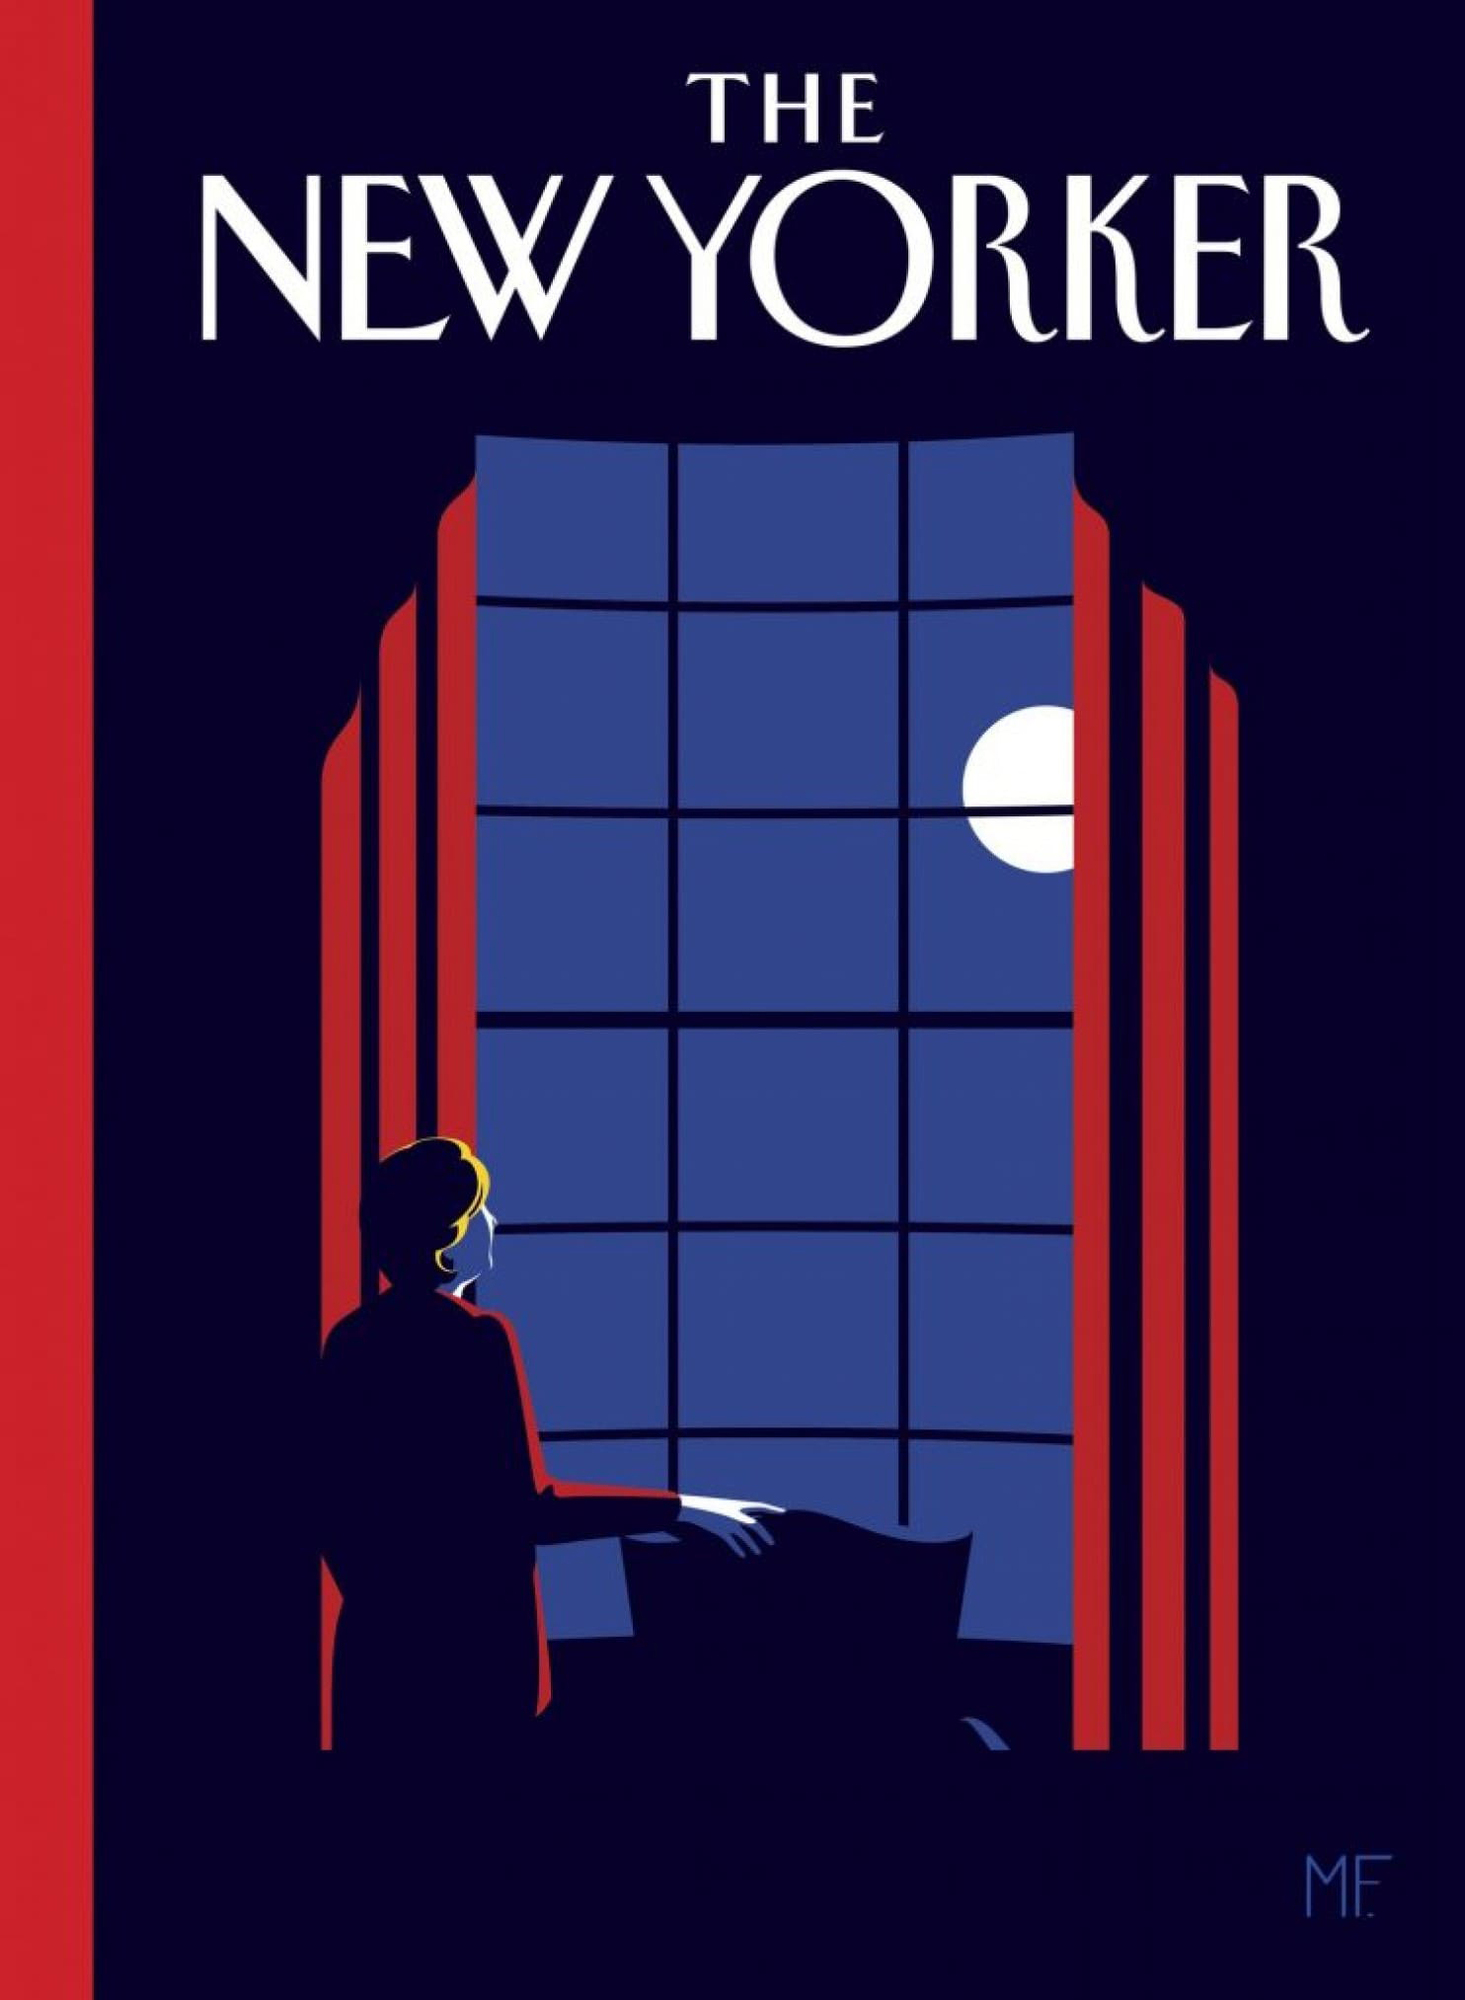 Steig Covers Brendan Gills Here At The New Yorker   Inkspill